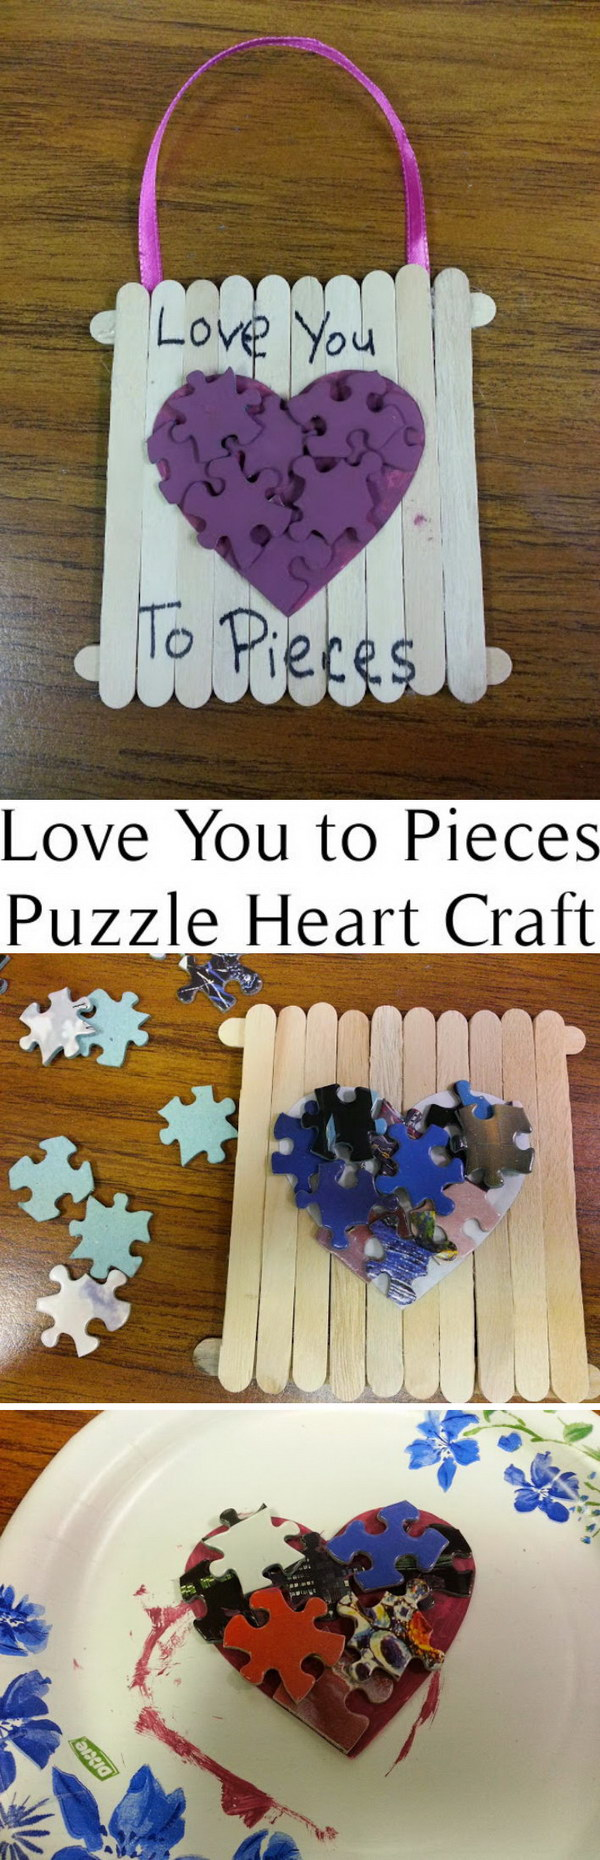 Love You to Pieces Puzzle Heart Craft.